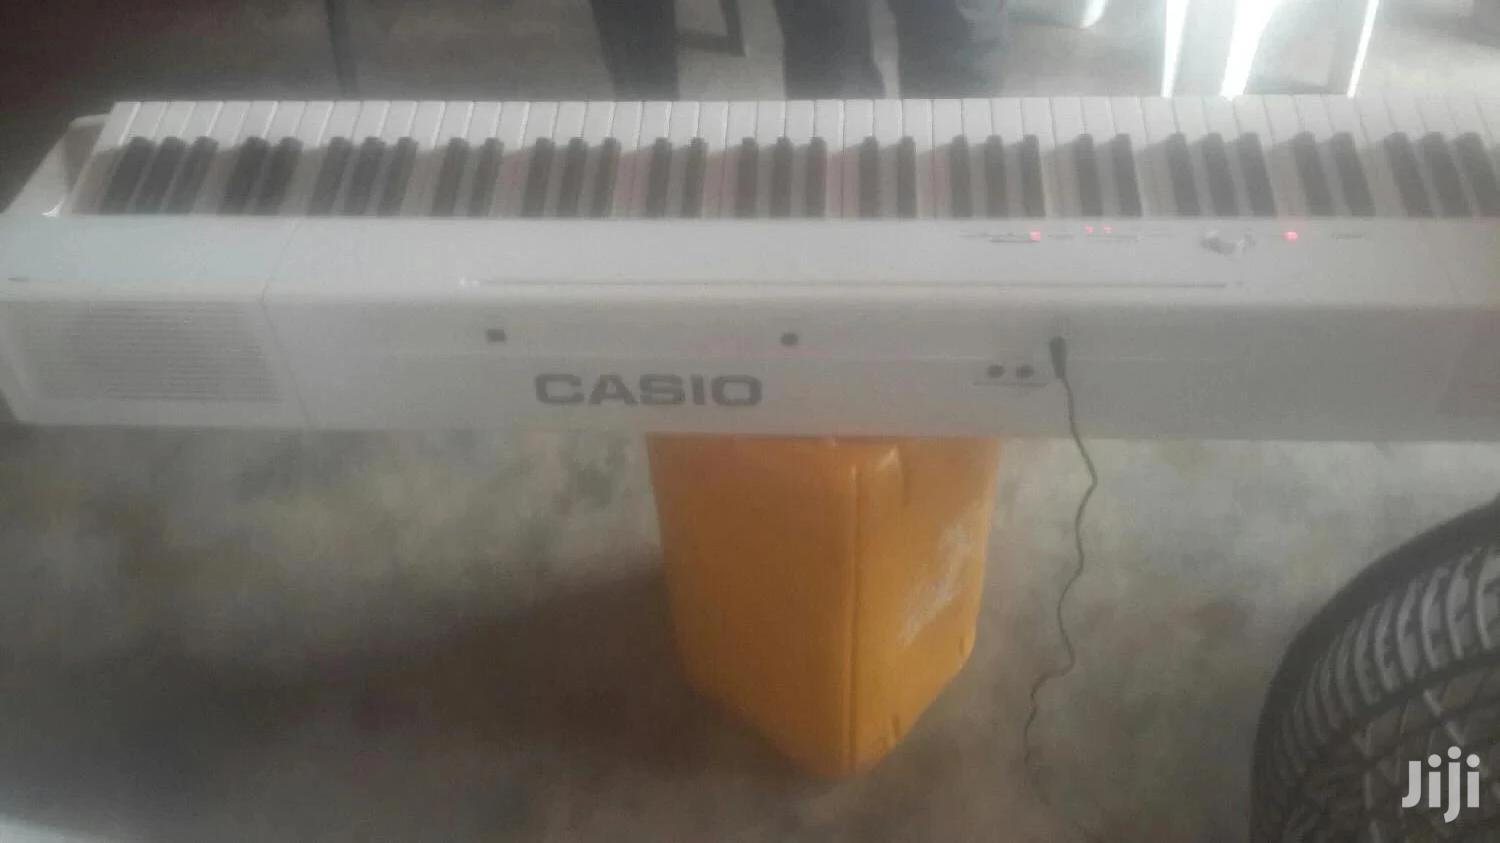 Casio Privia 160   Musical Instruments & Gear for sale in Accra Metropolitan, Greater Accra, Ghana